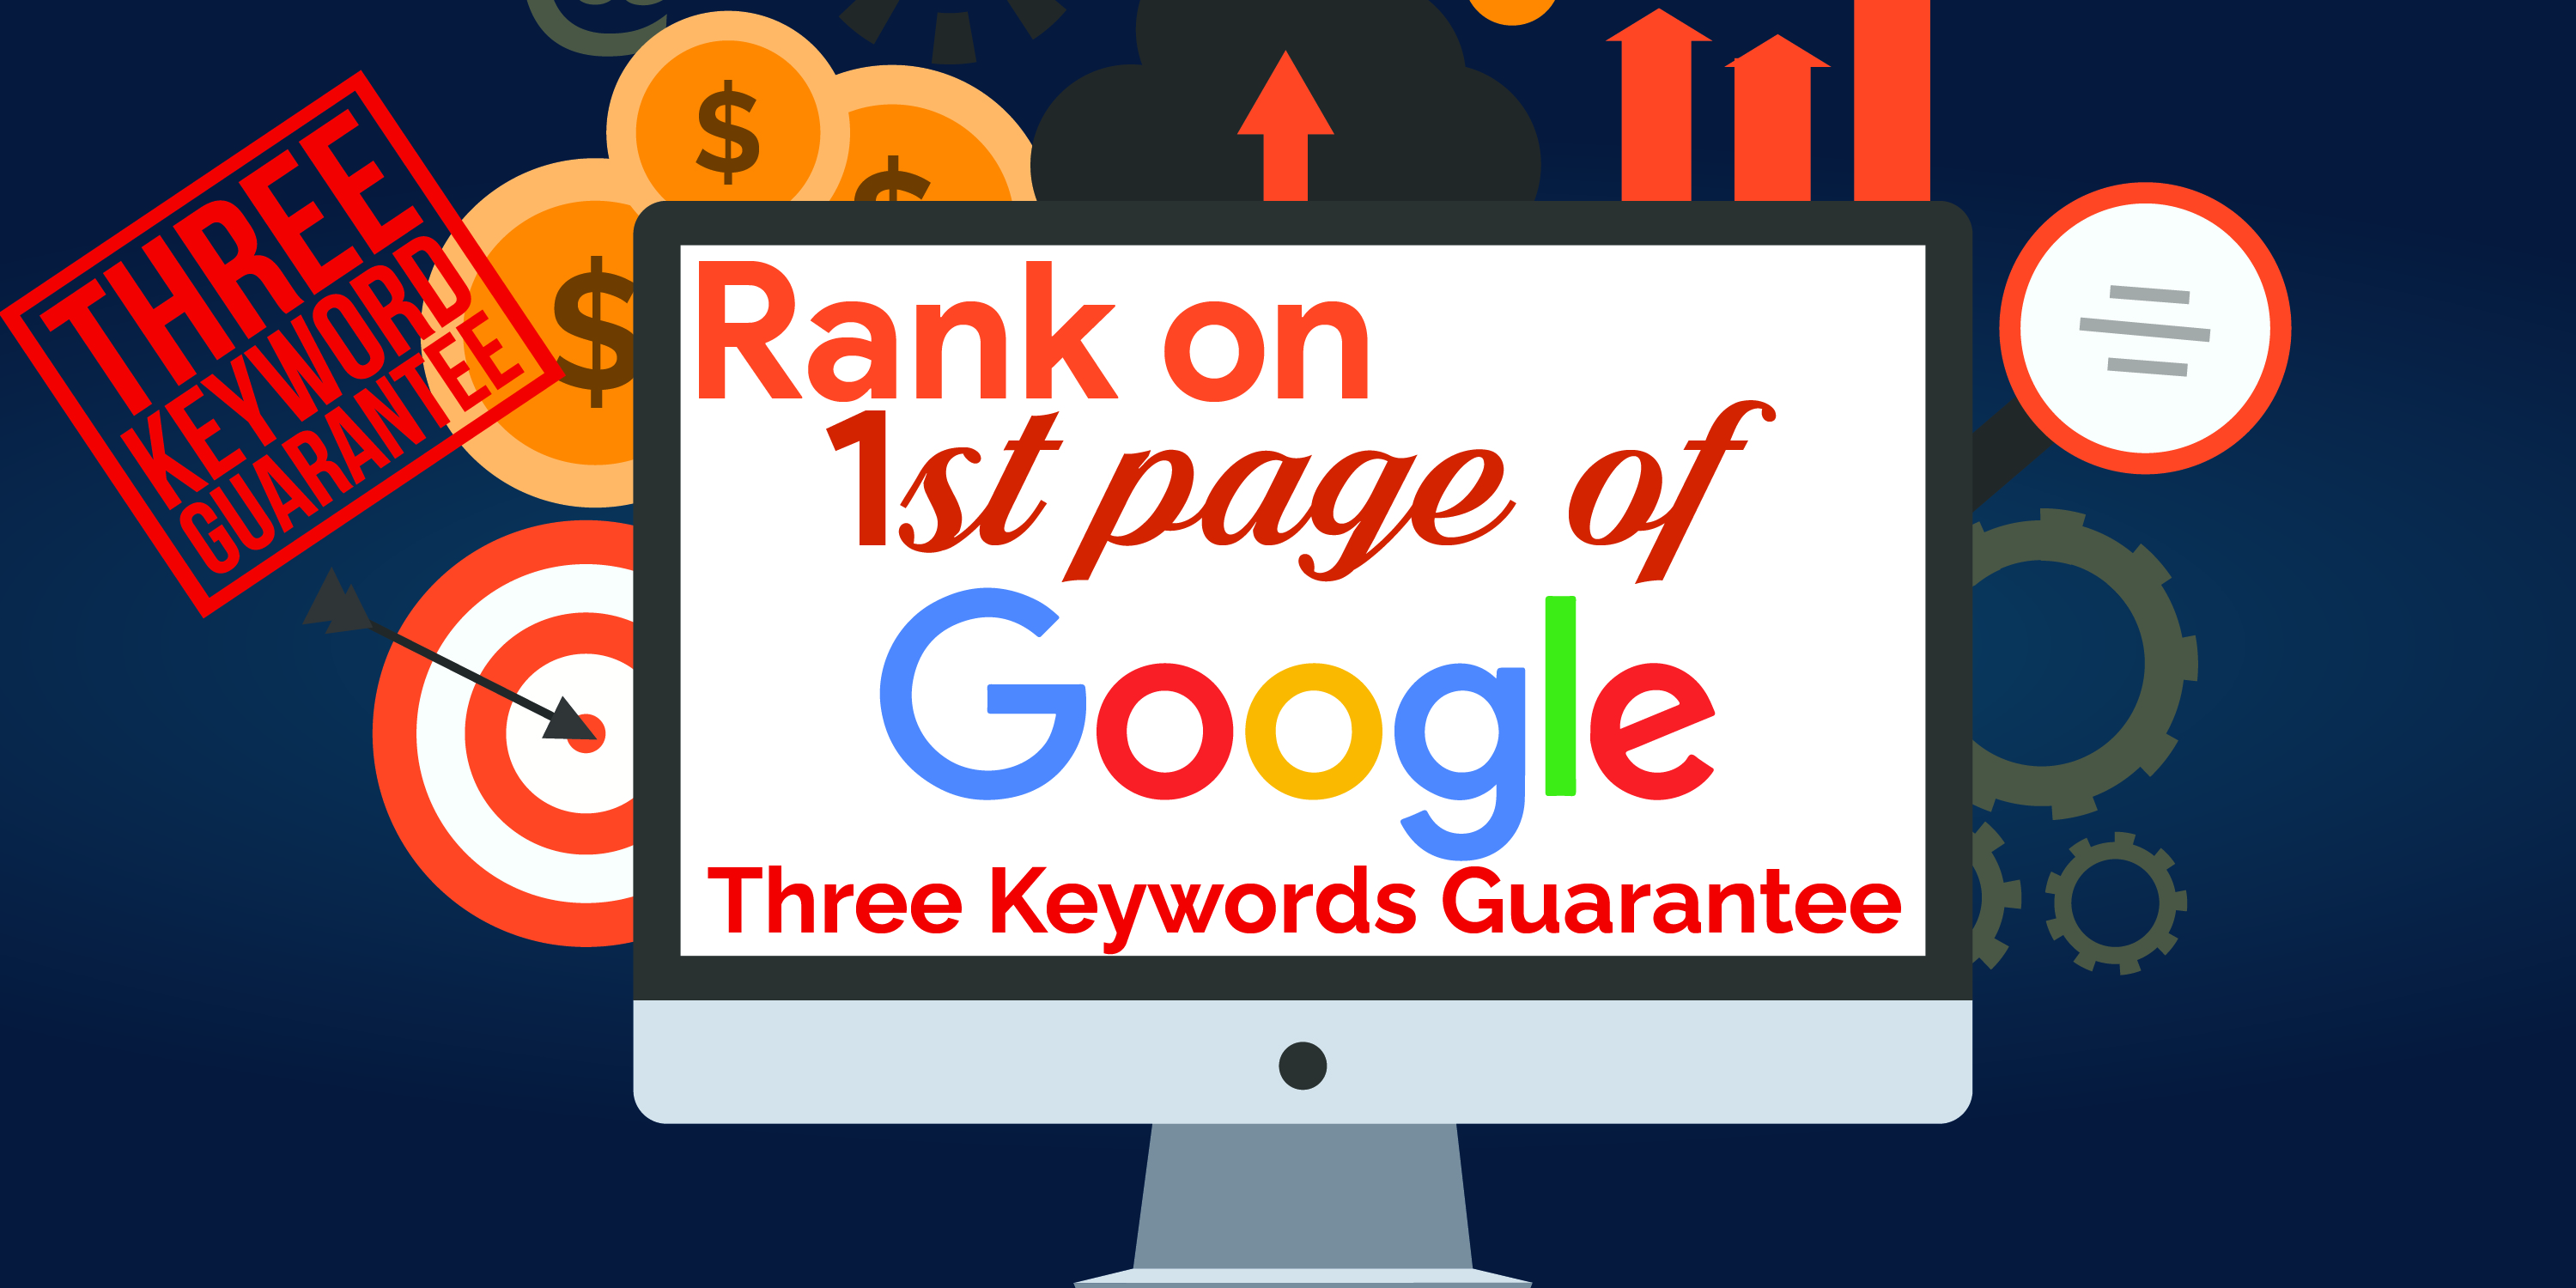 Land on Google 1st page with High DA Quality Backlinks